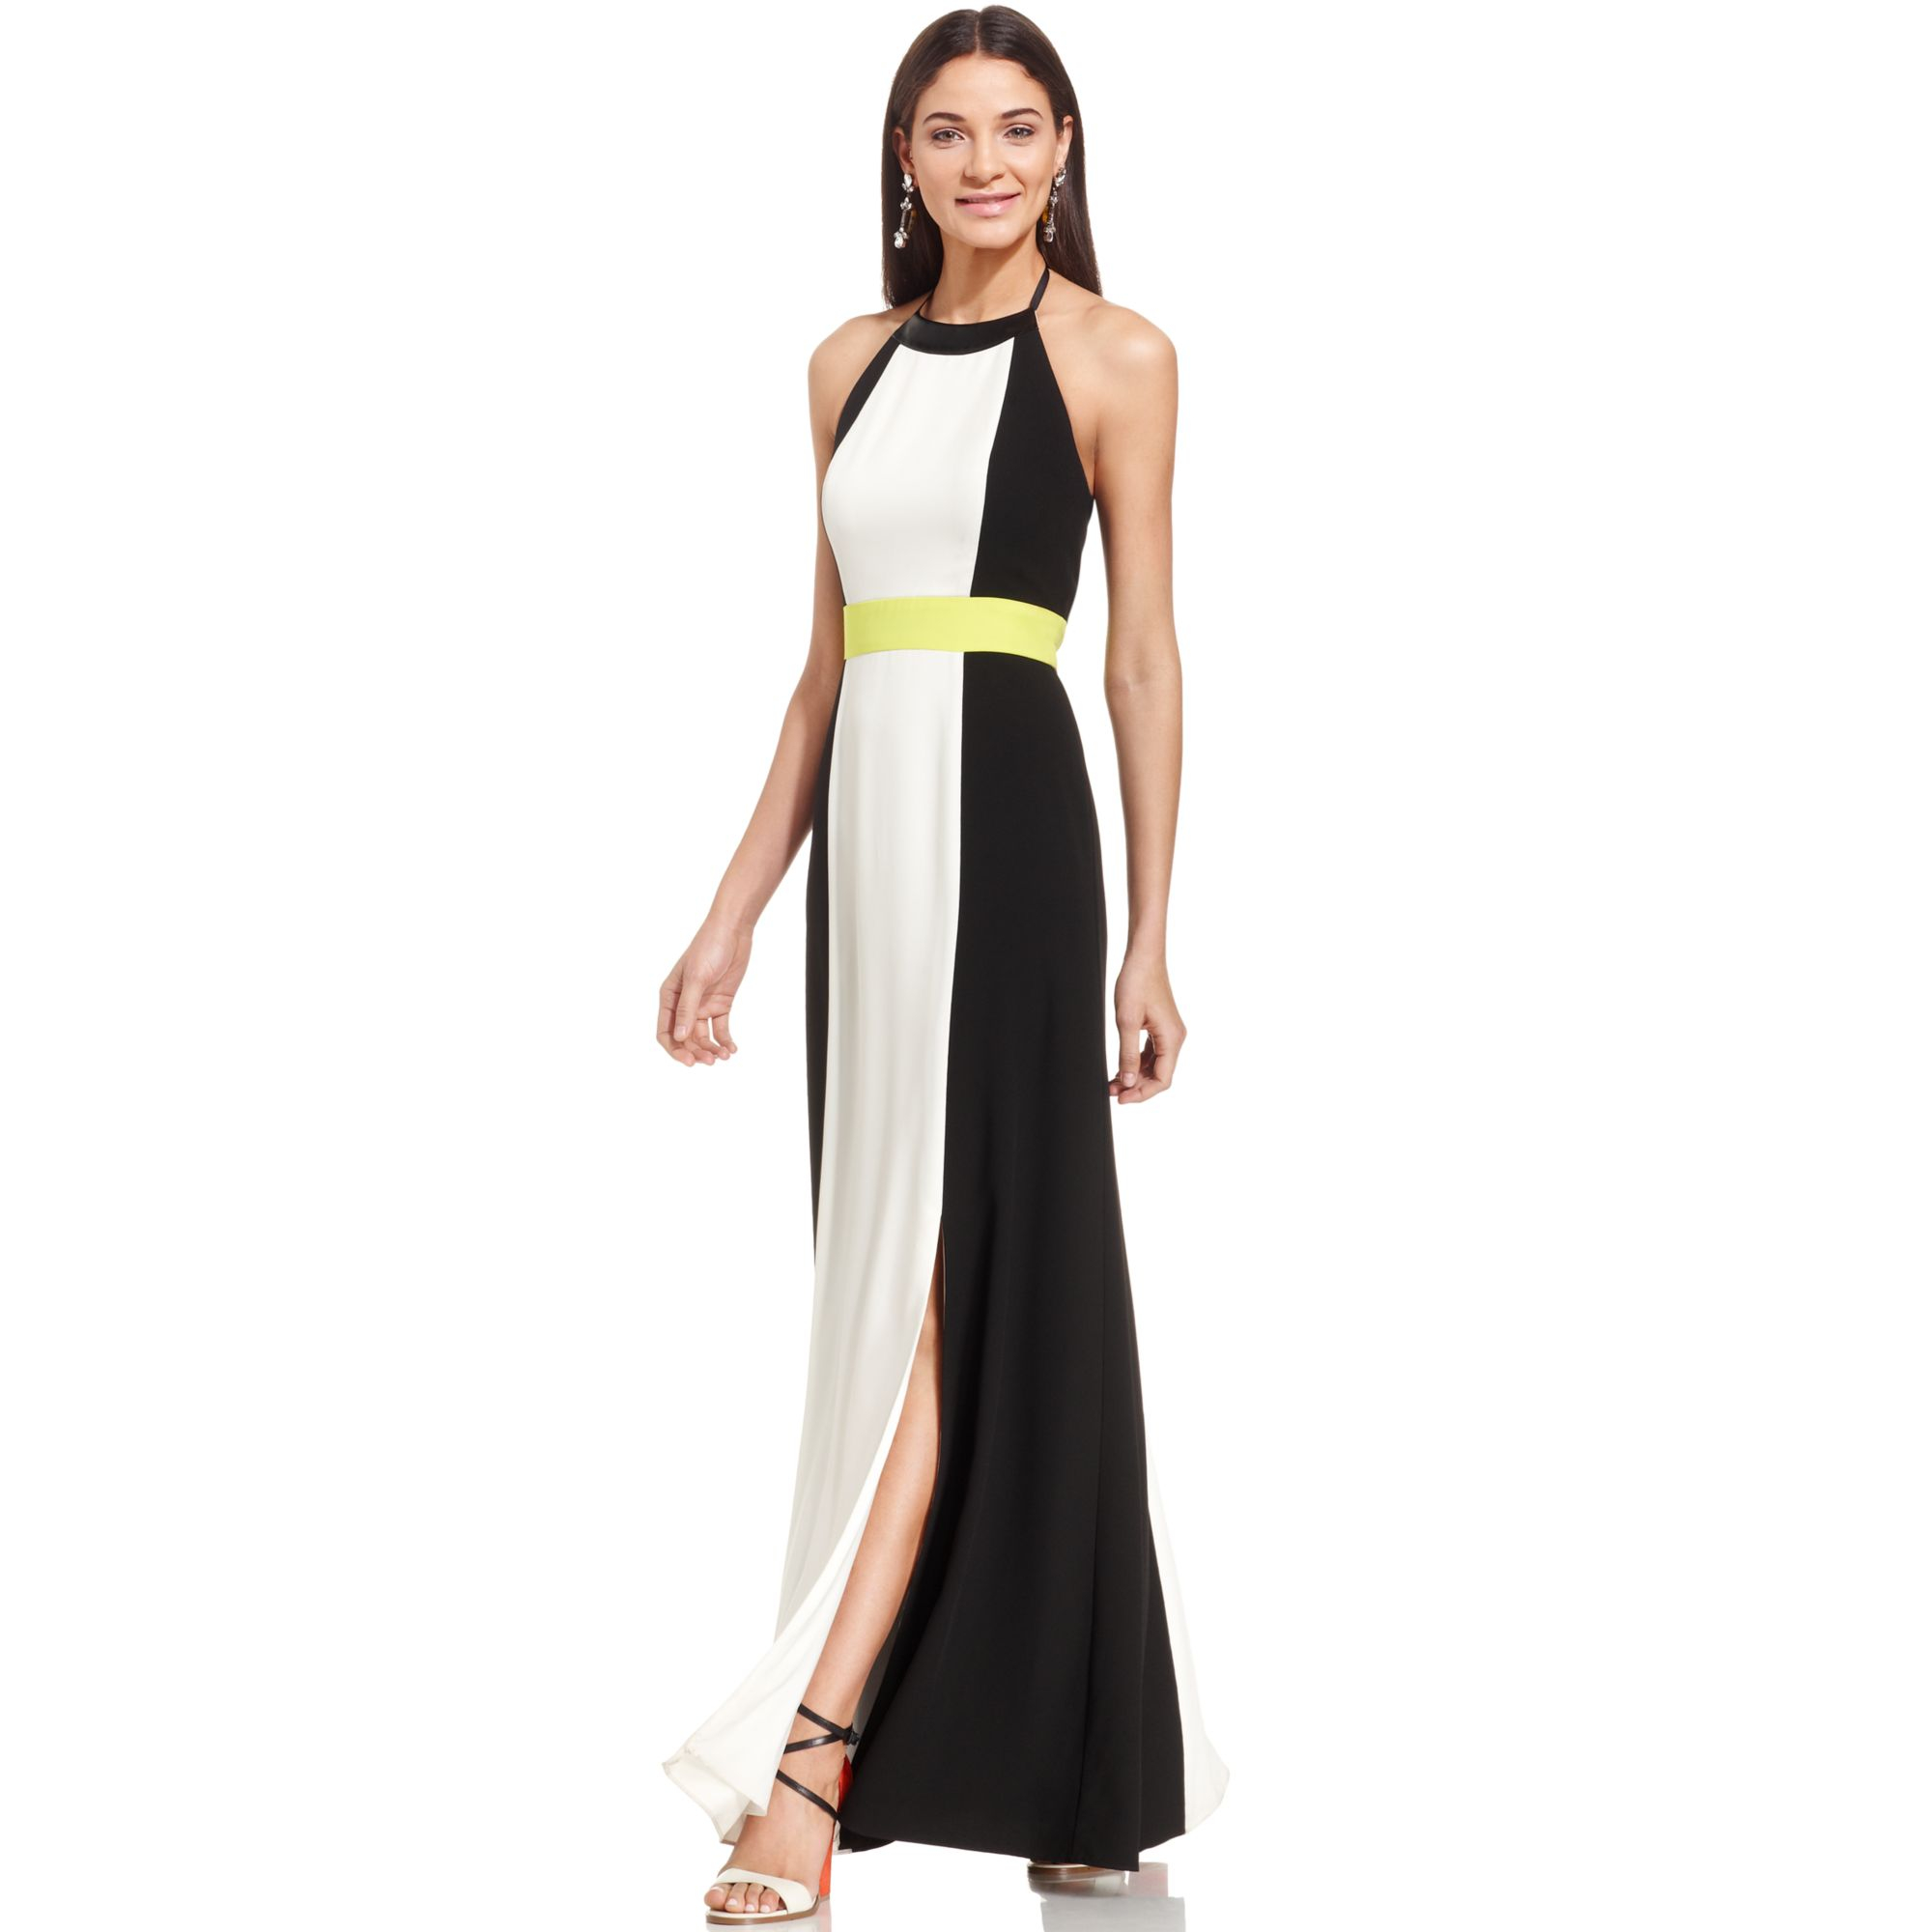 Lyst - Vince Camuto Colorblock Halter Maxi Dress in Black